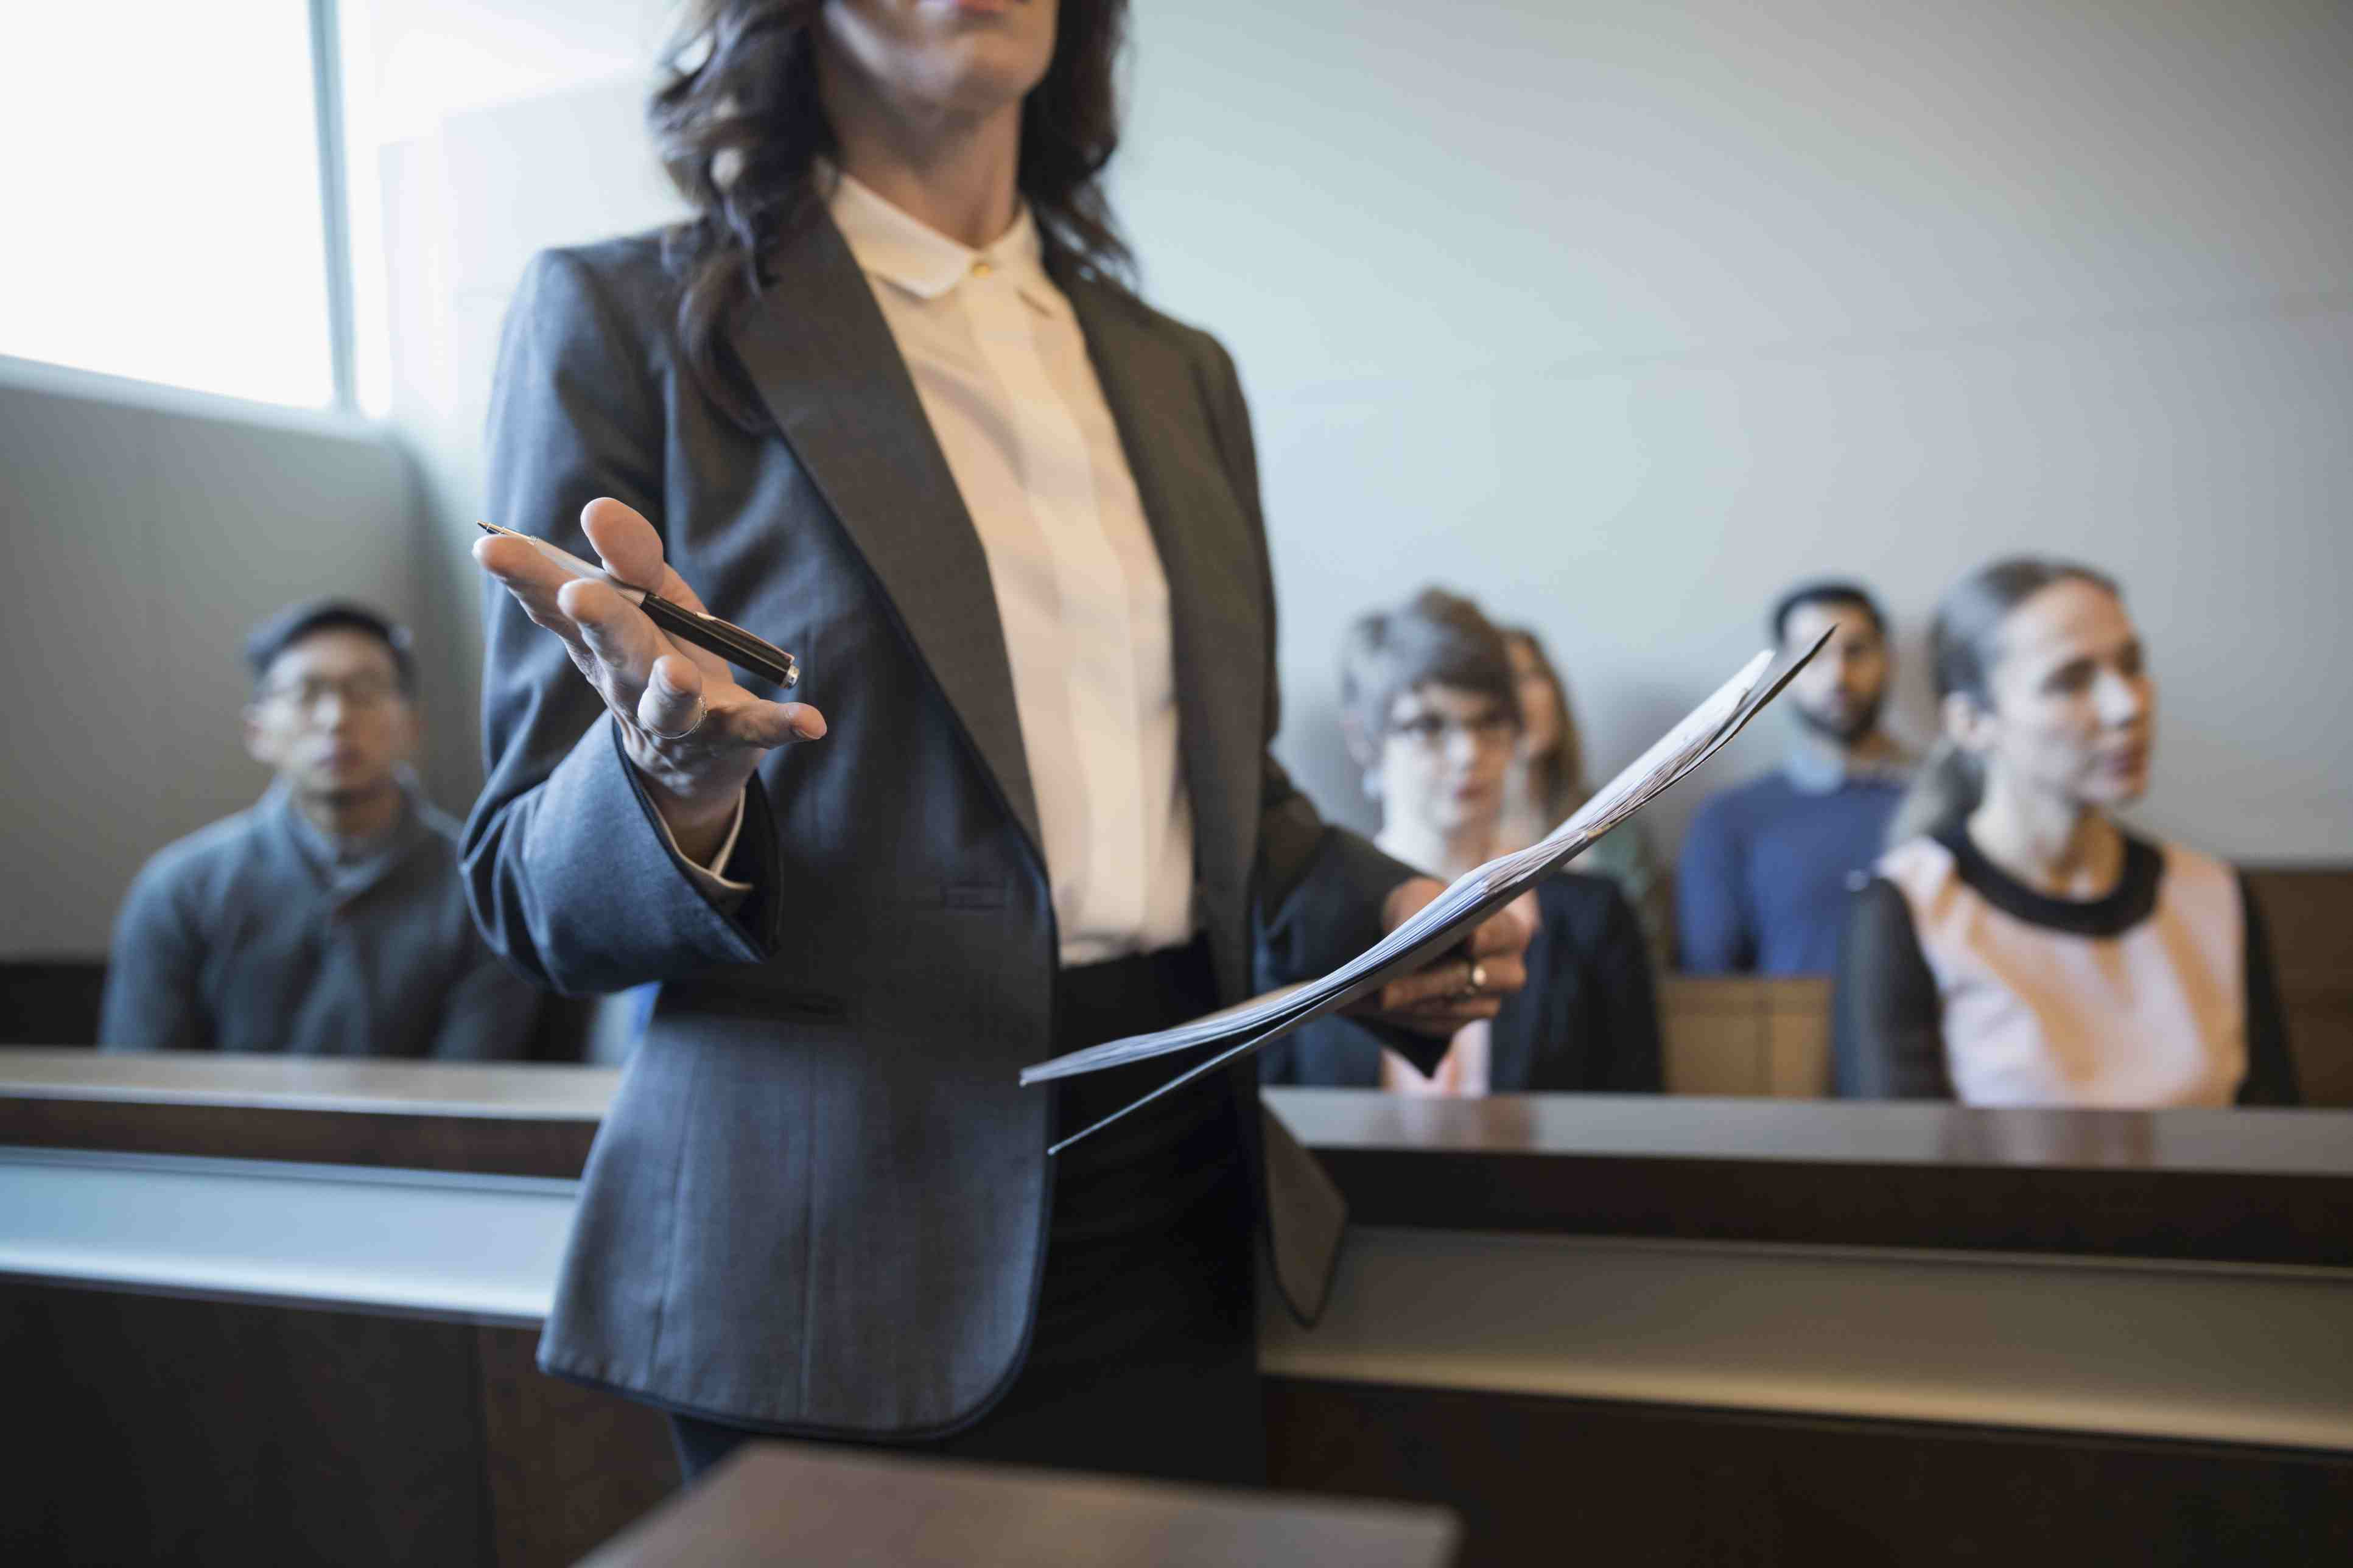 Female attorney talking and gesturing in legal trial courtroom